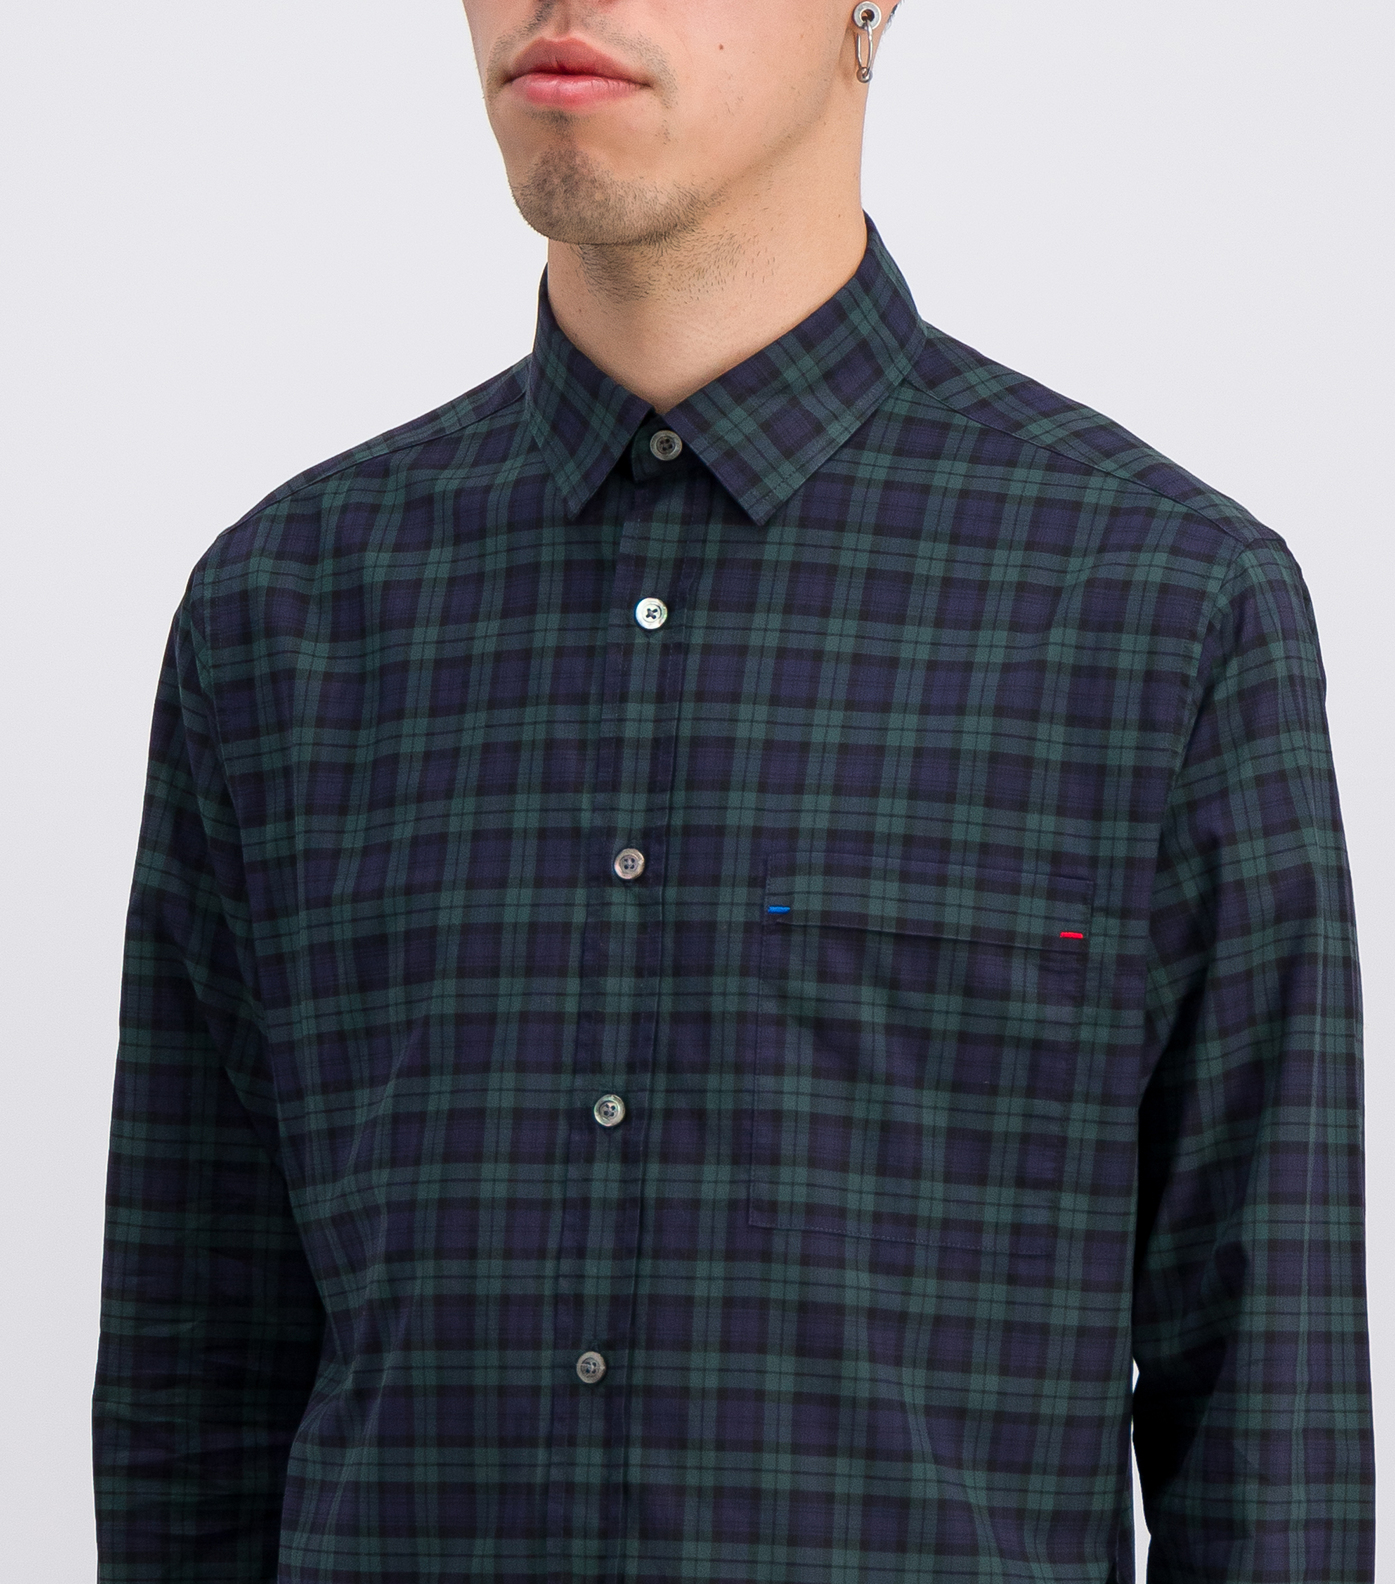 SHIRT ROSSEL19-CK - Checked